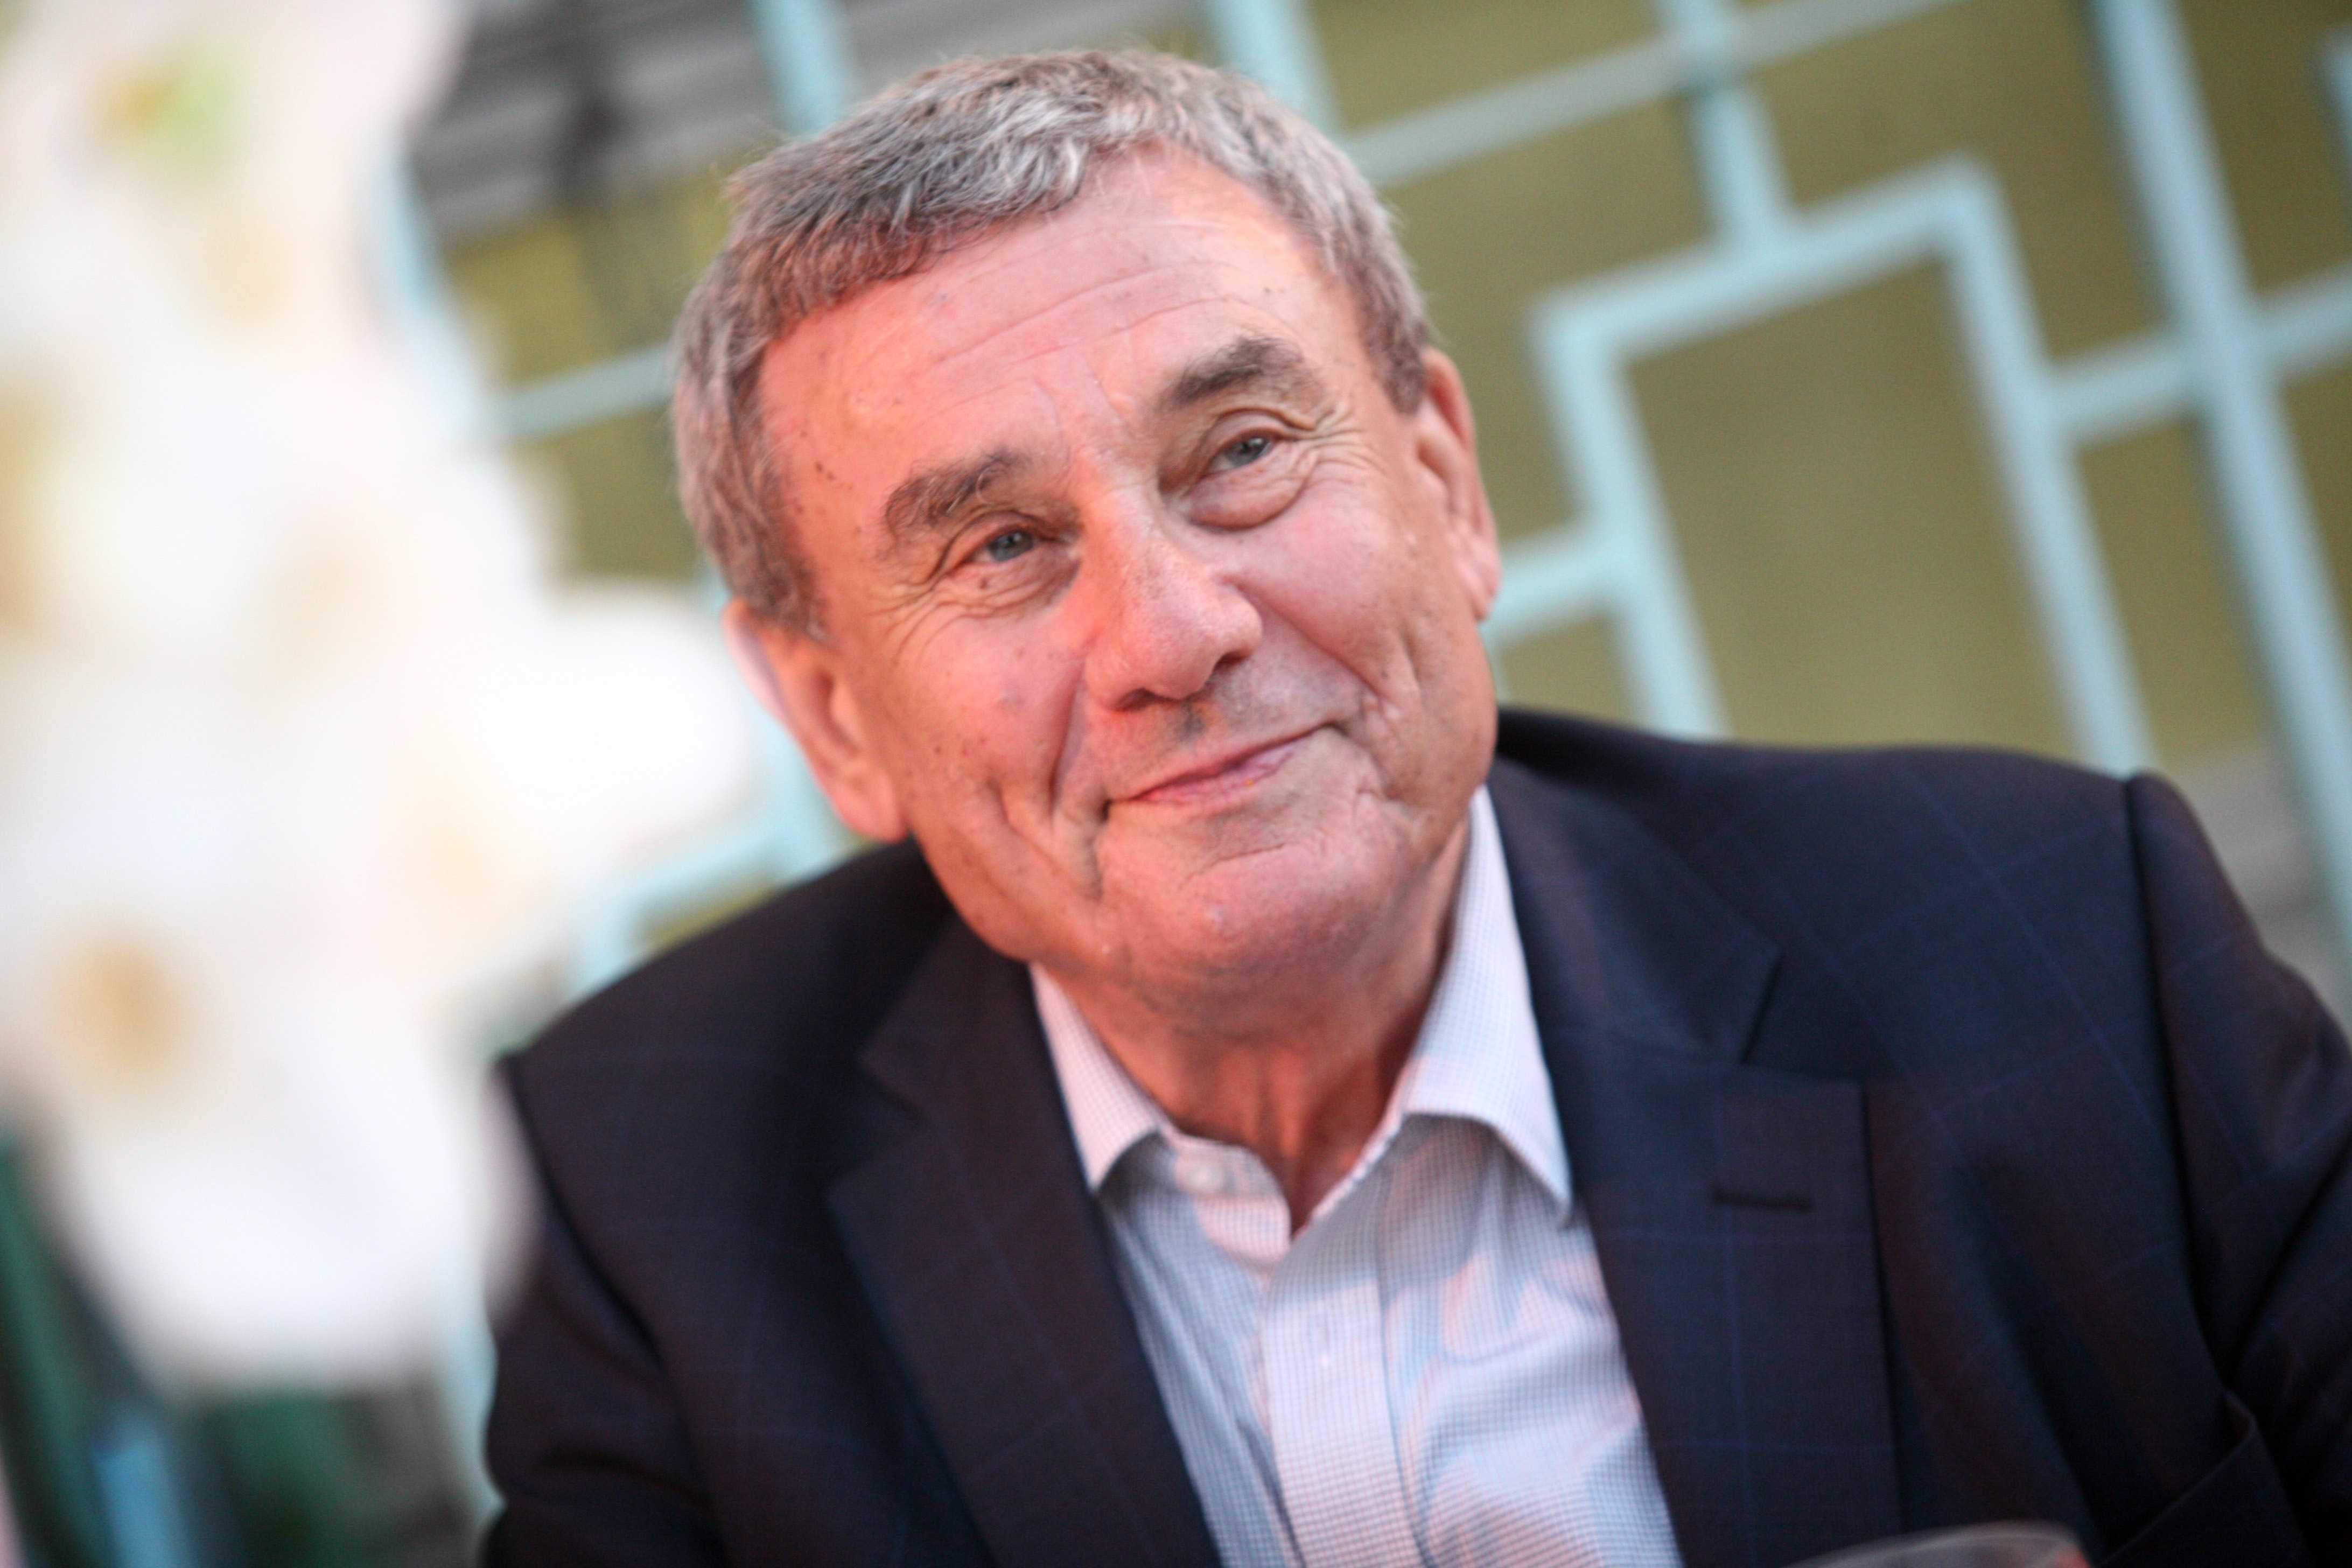 Quick-fire Q&A with Sol Kerzner